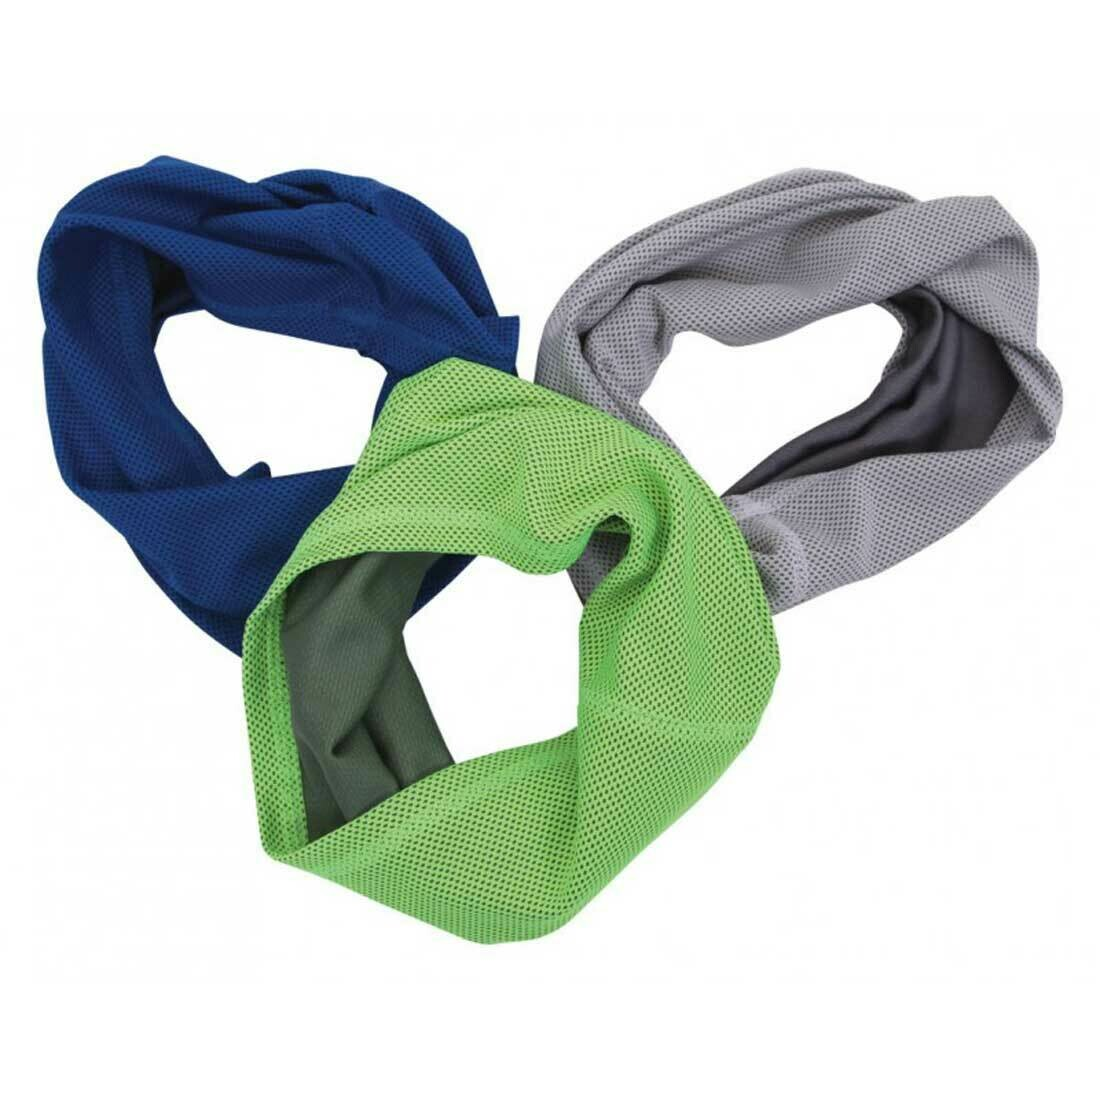 Deluxe Cooling Head/Neck Wrap (Includes Logo)